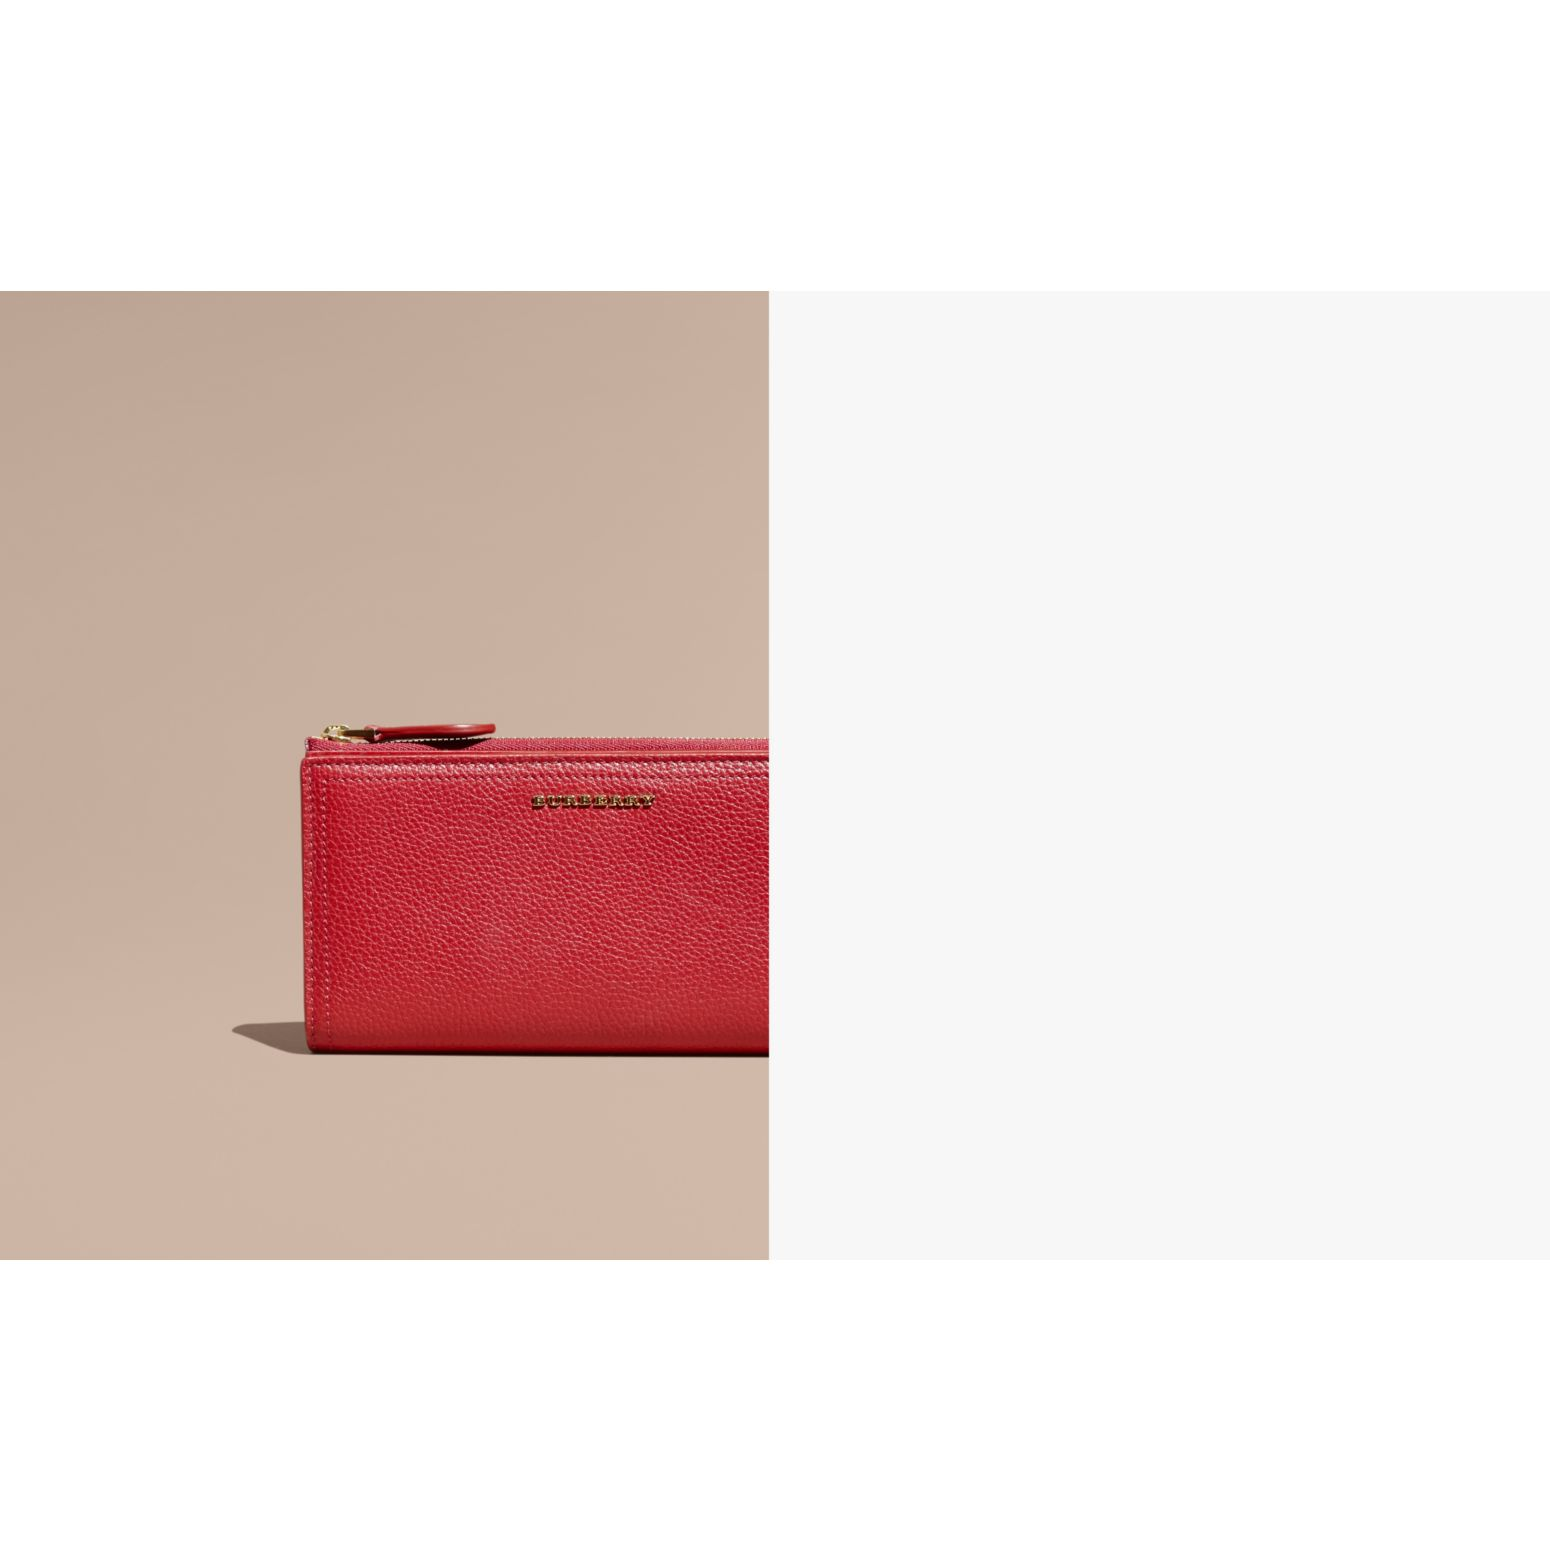 Grainy Leather Ziparound Wallet in Parade Red - Women | Burberry - gallery image 2